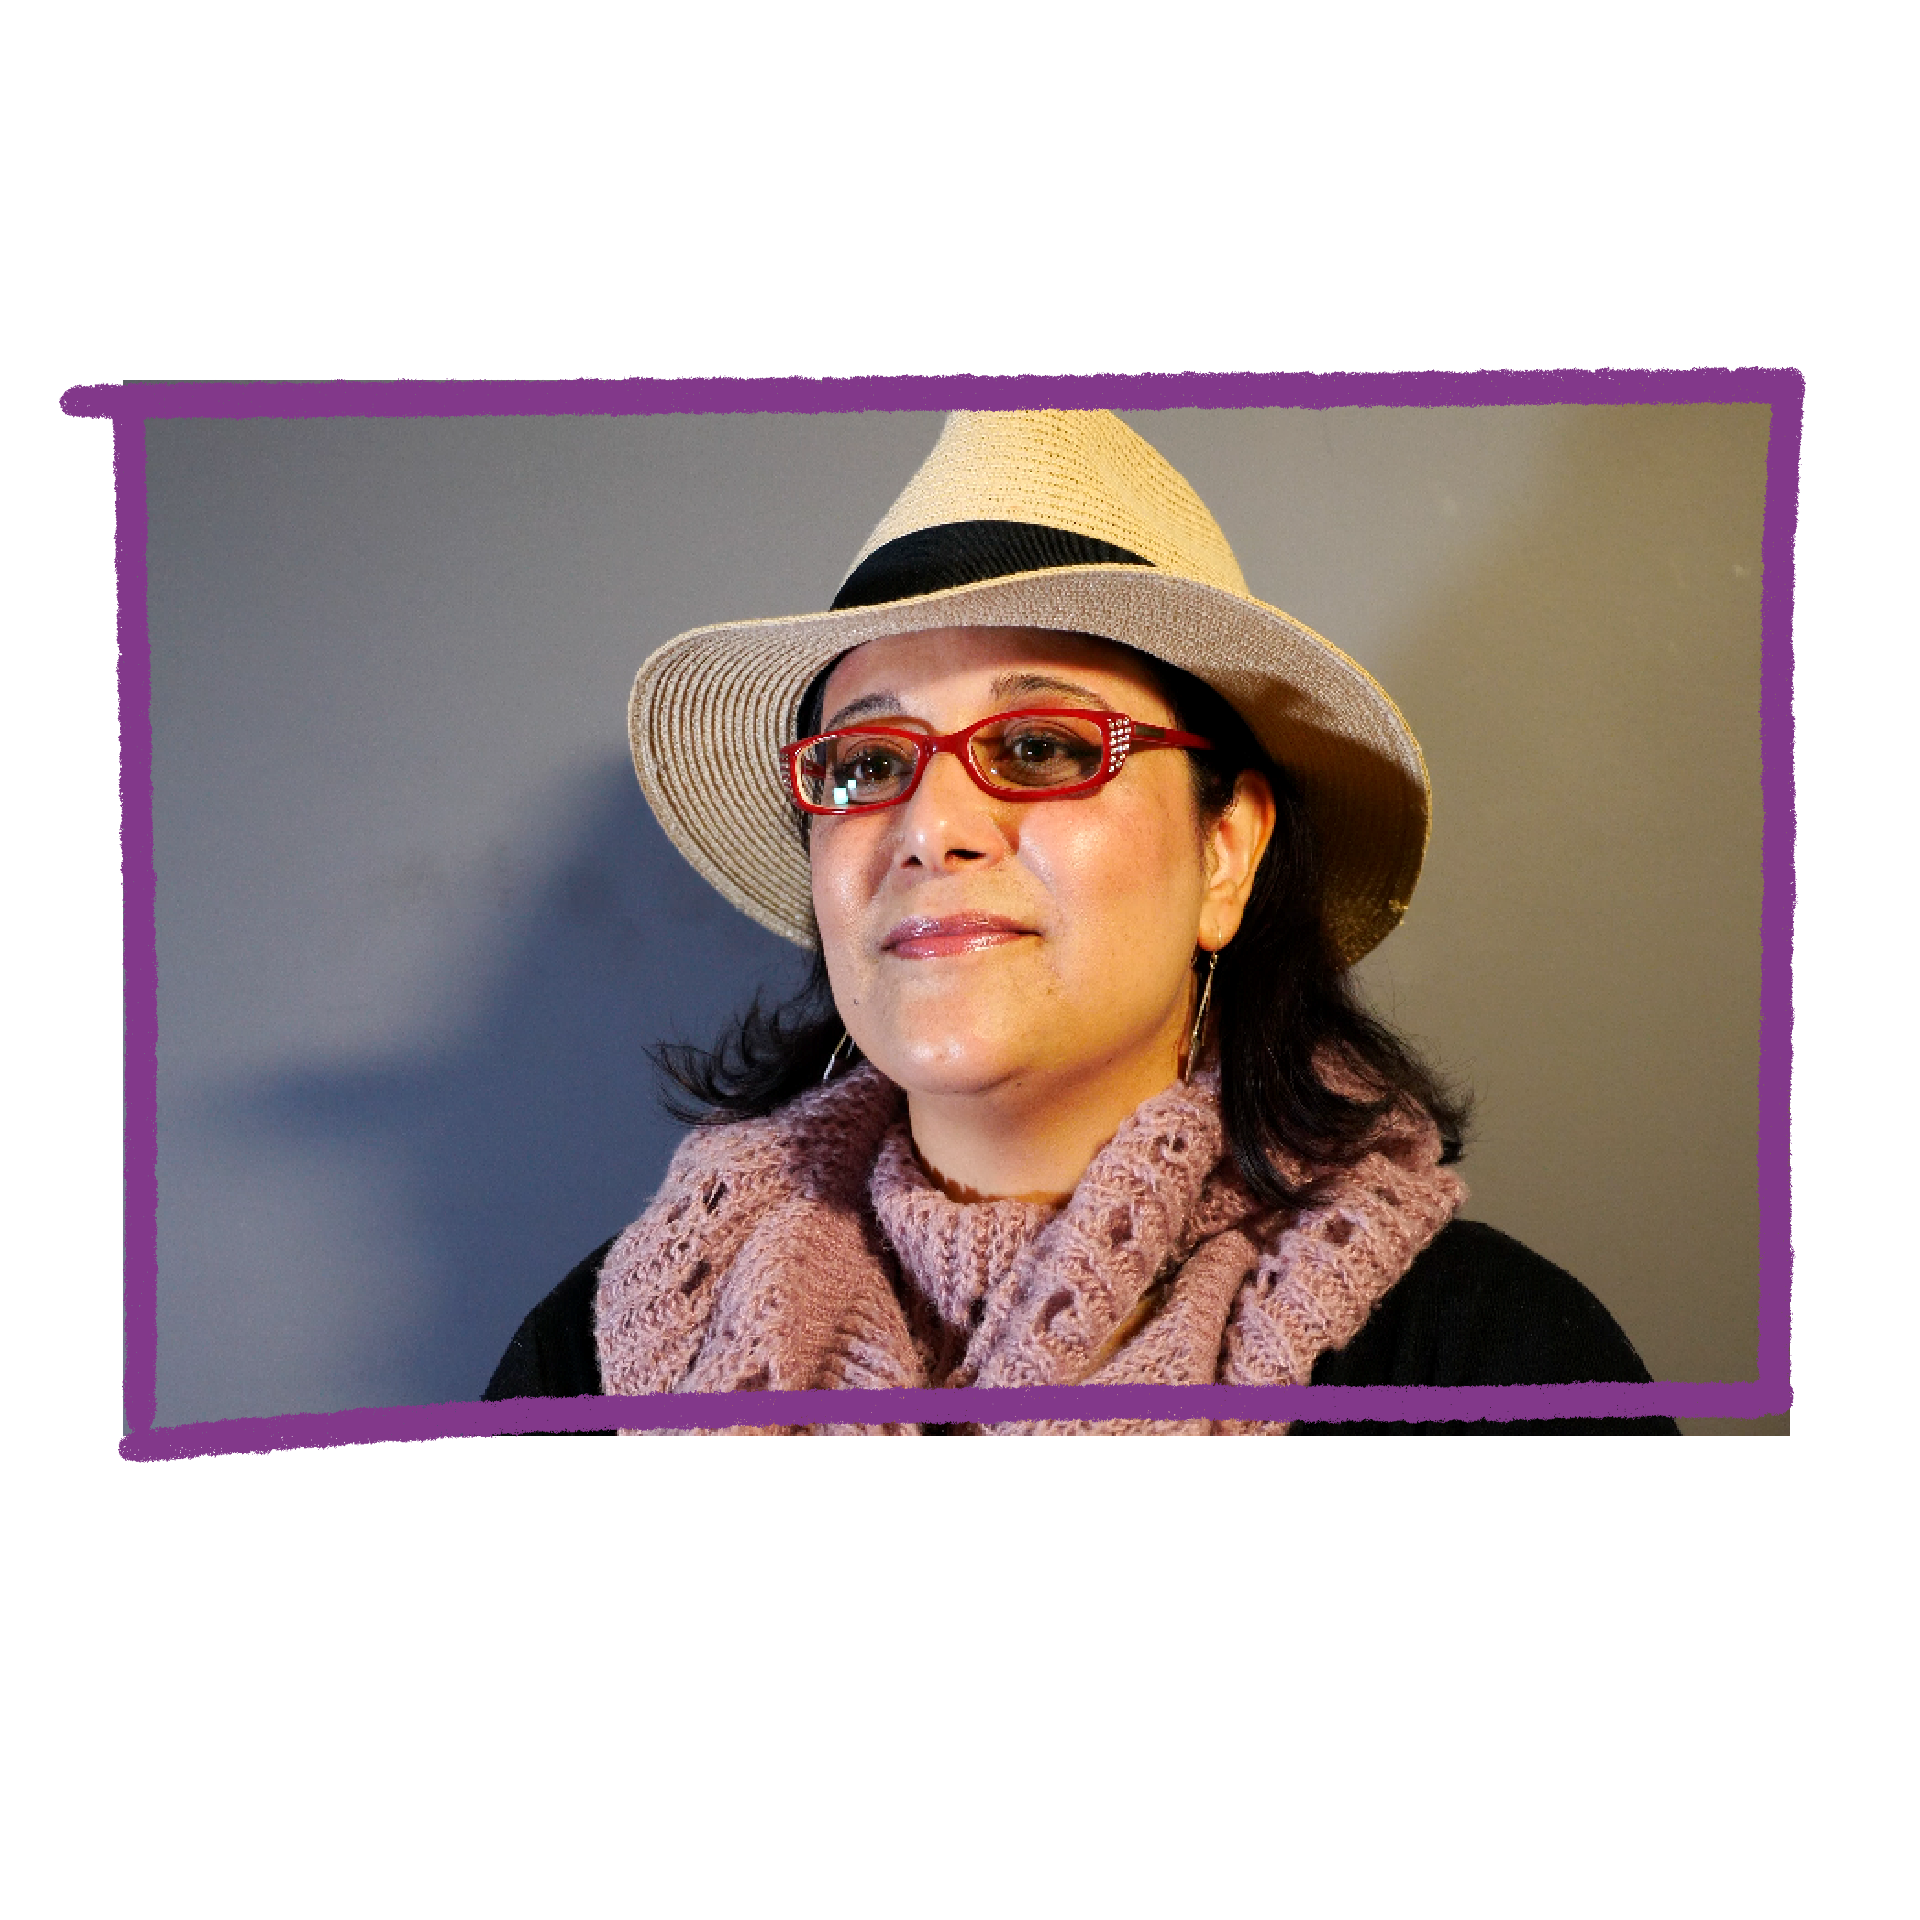 Photo of Talie. She is wearing a straw hat, pink scarf and glasses.